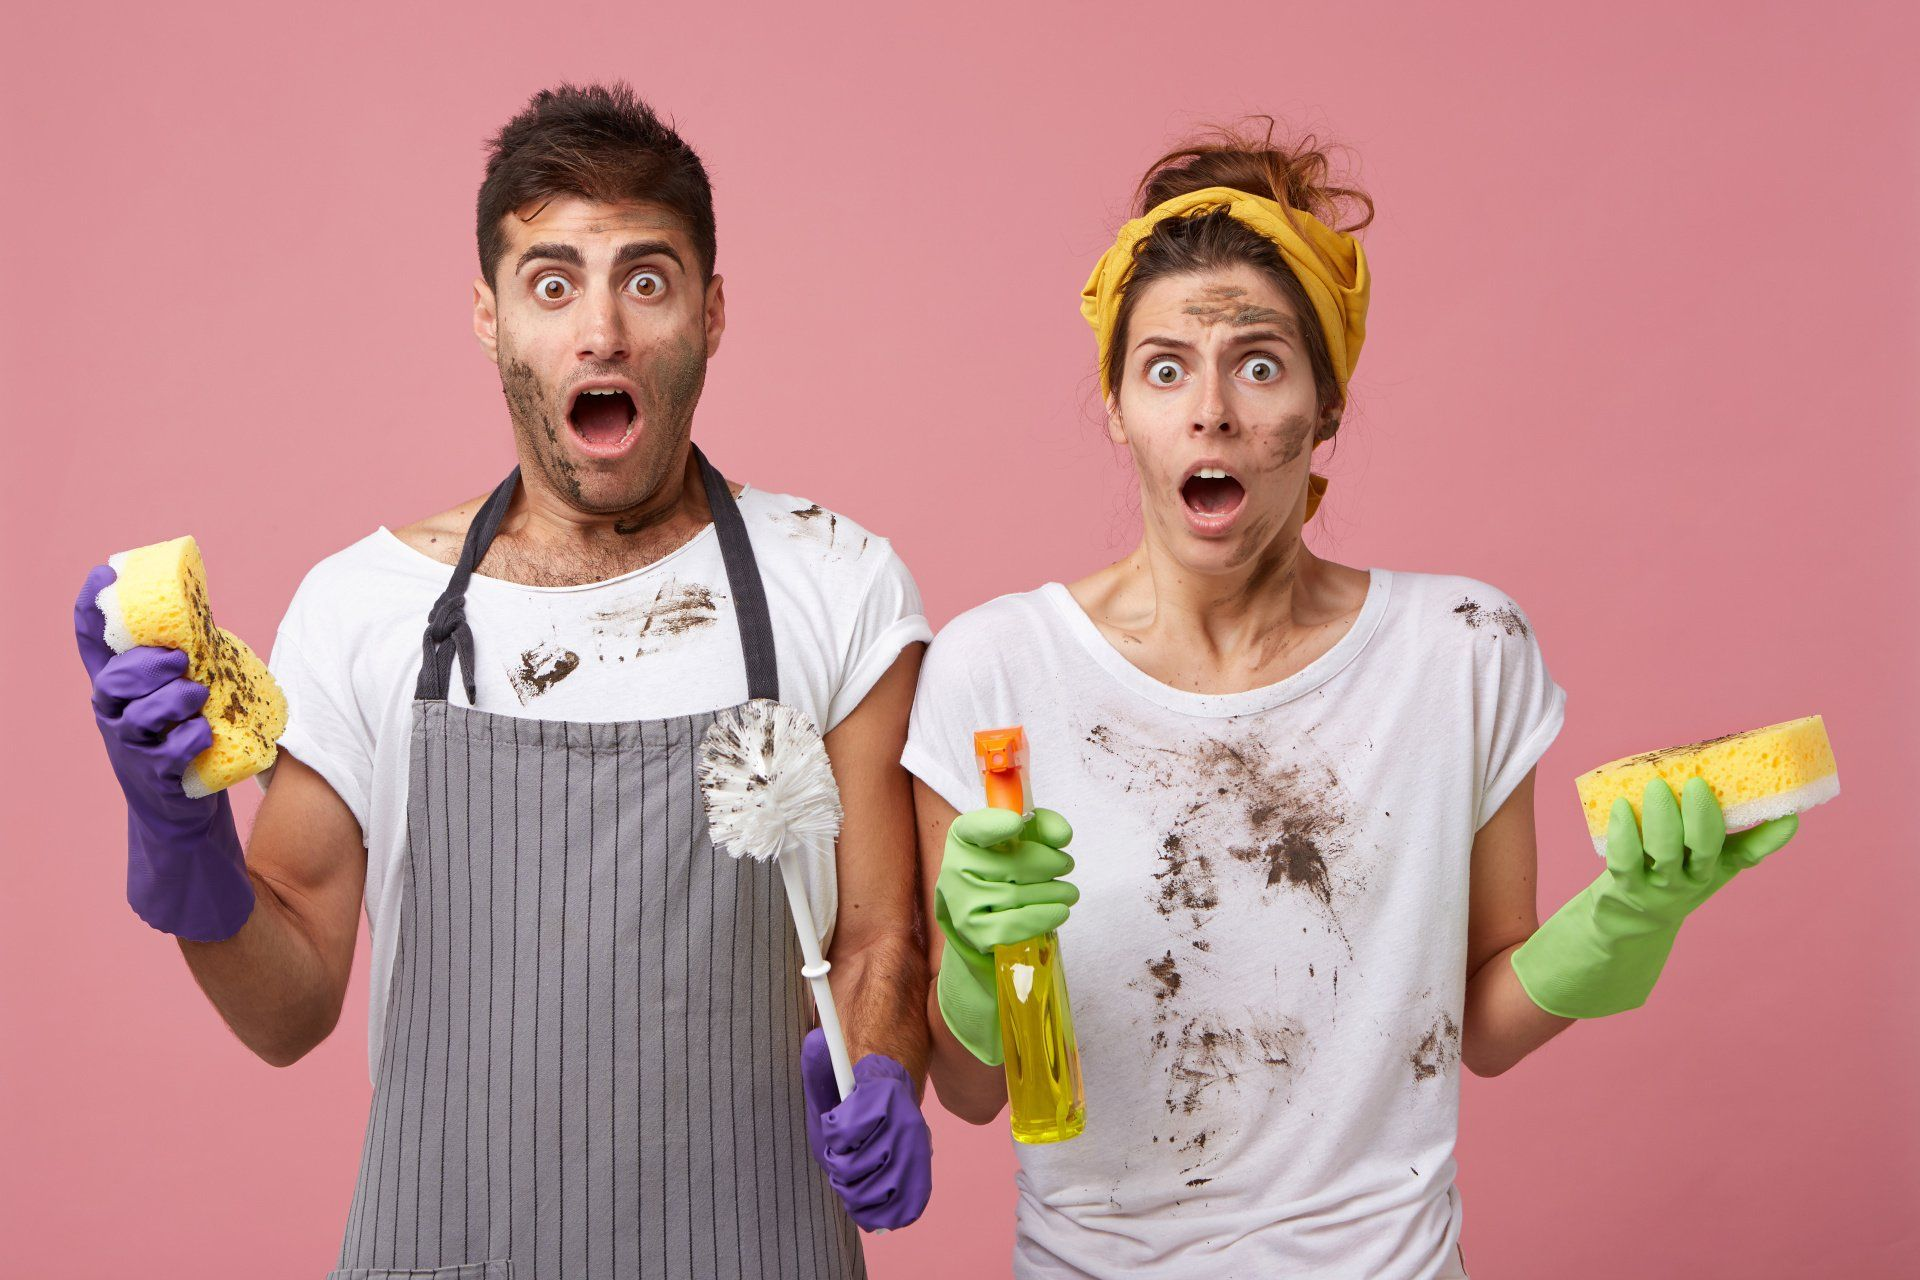 man and woman covered in dirt holding cleaning supplies